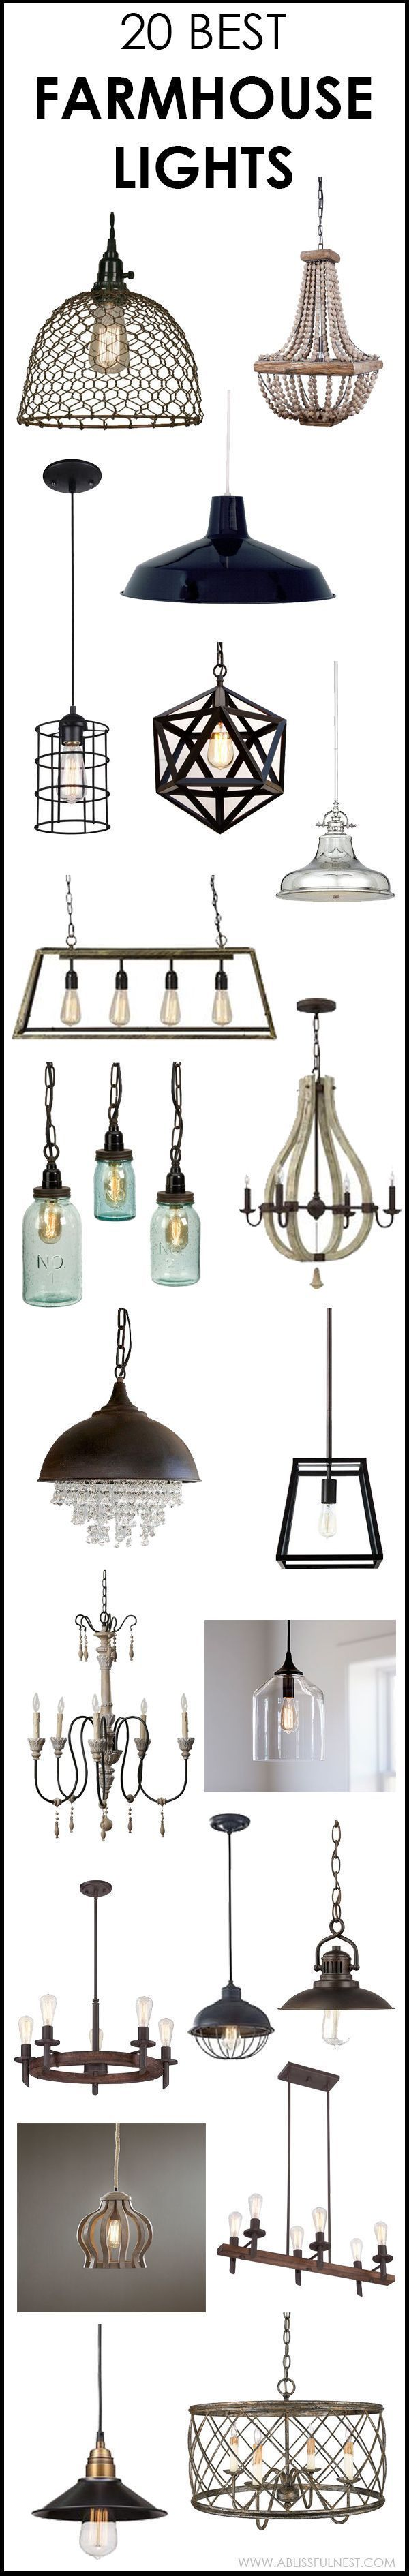 1963 best all things lighting images on pinterest kitchens farmhouse lights 20 amazing styles to choose from arubaitofo Gallery